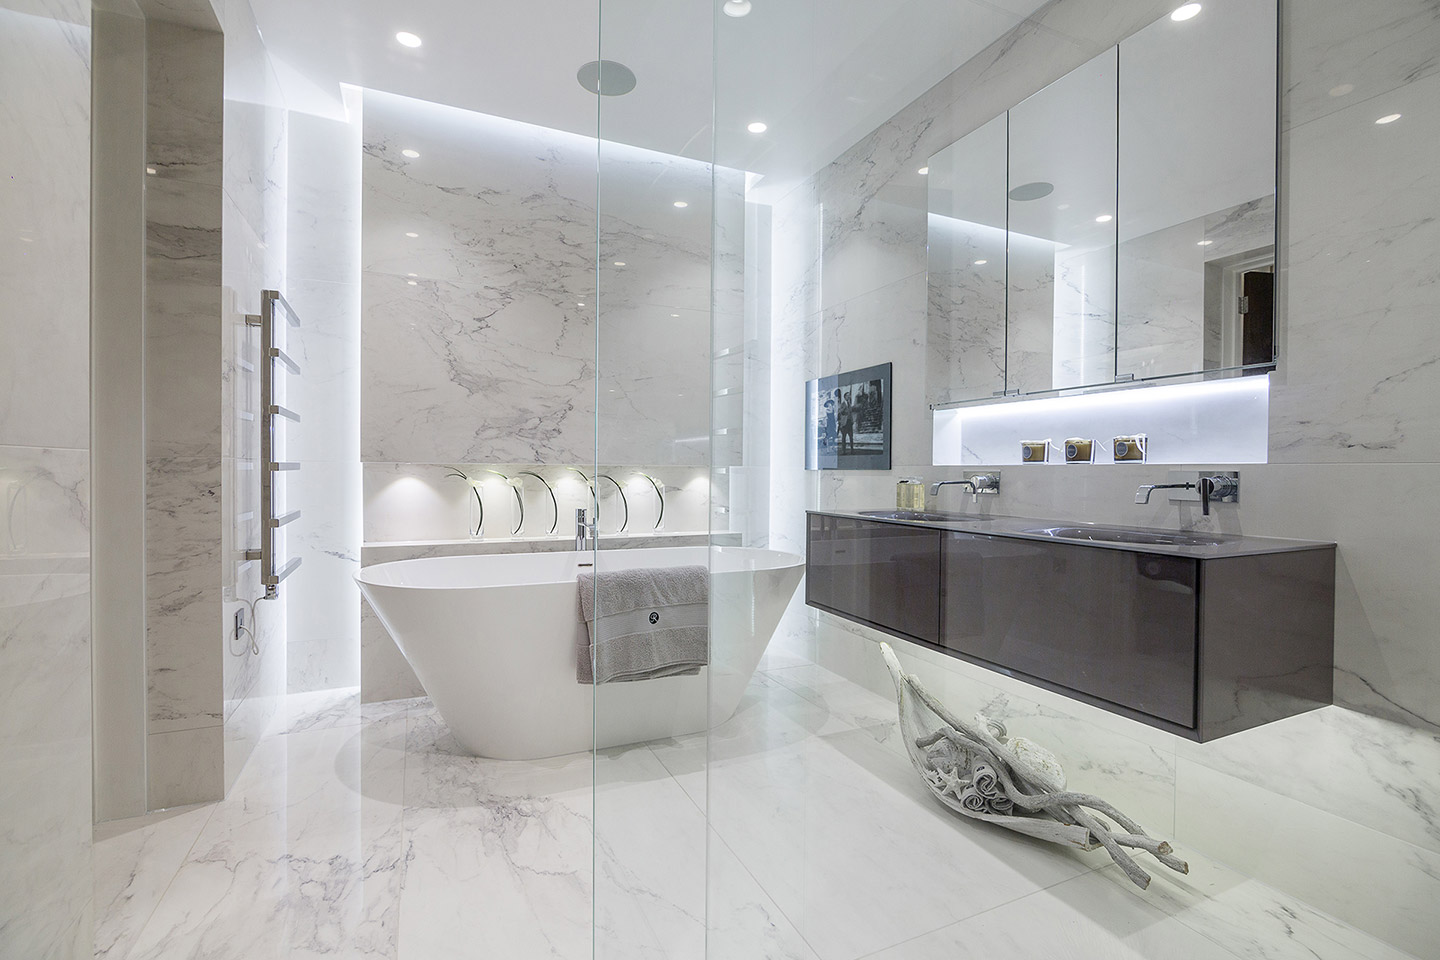 1 / 8Luxury Bathroom ...